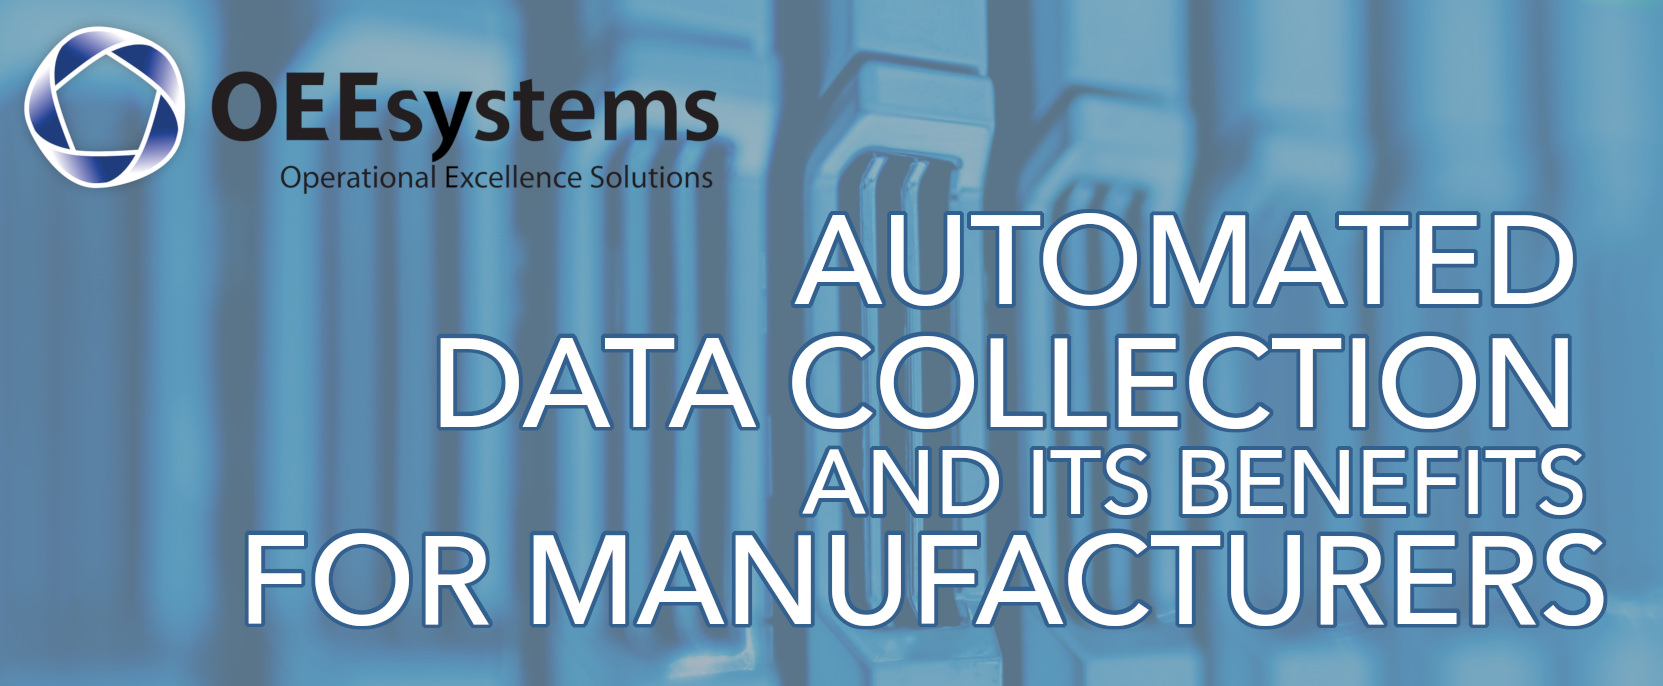 Automated Data Collection for Manufacturing | OEEsystems